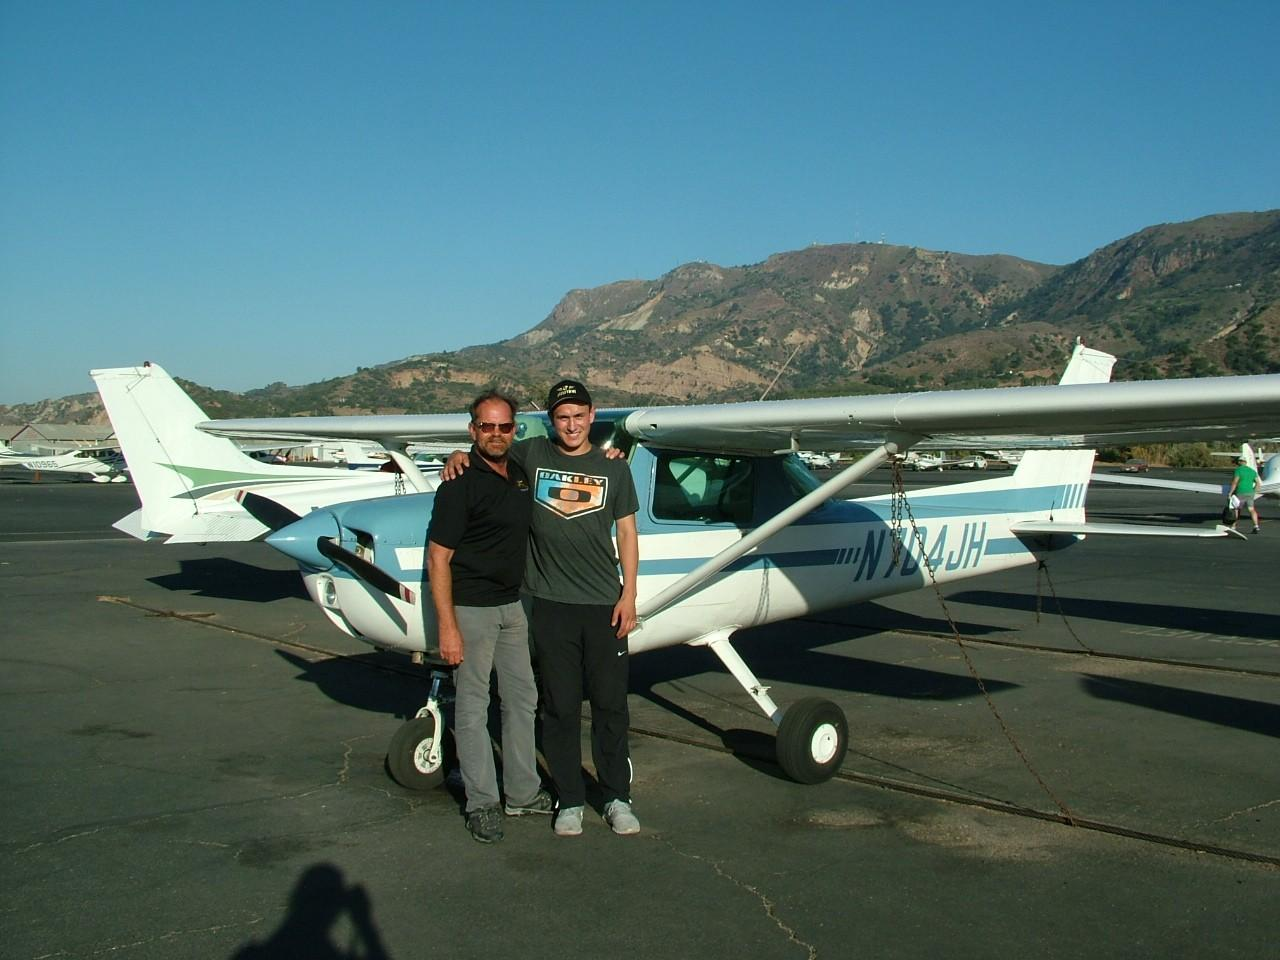 First Solo - Bubba McDaniel